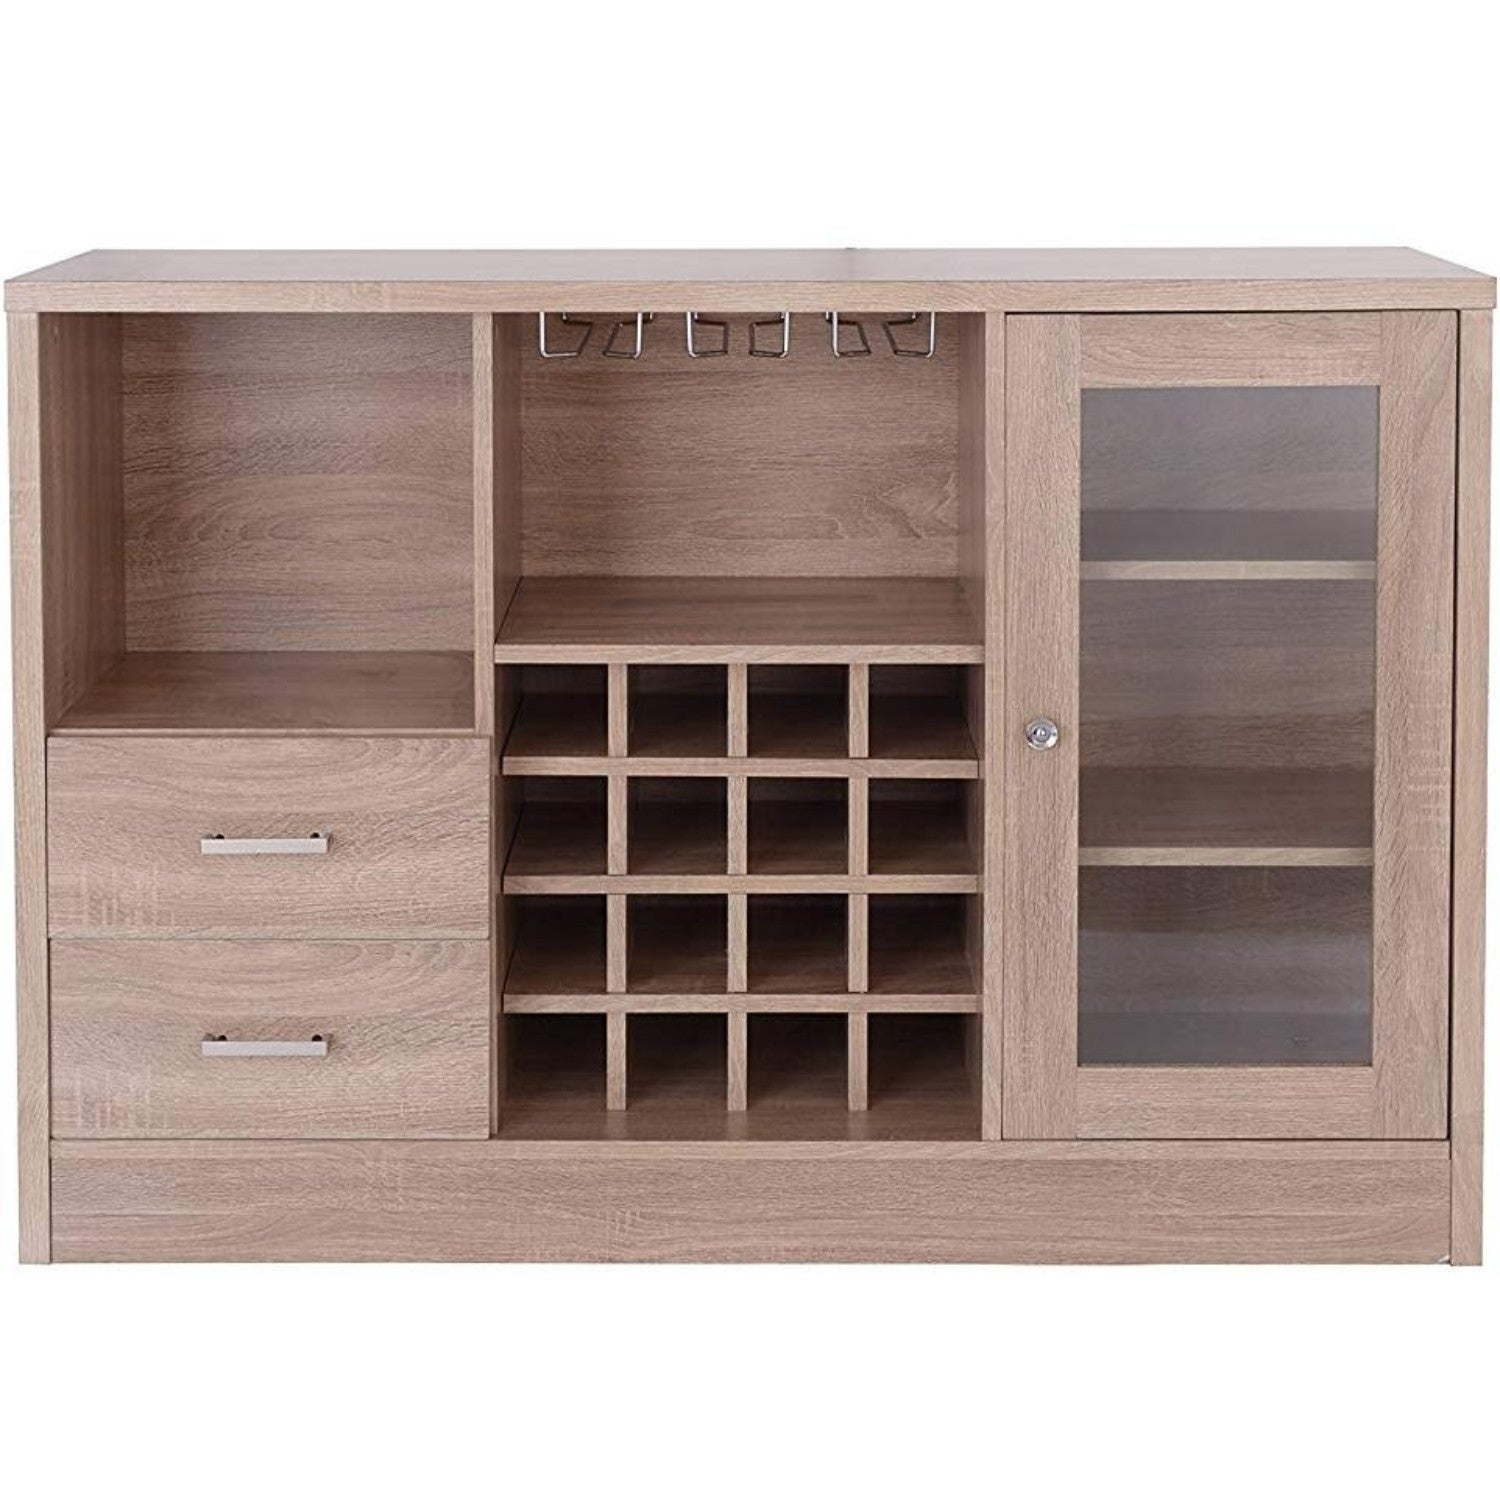 Contemporary Wooden Server With One Side Door Storage Cabinets And Two Drawers, Brown Intended For Contemporary Wooden Buffets With Four Open Compartments And Metal Tapered Legs (View 6 of 30)